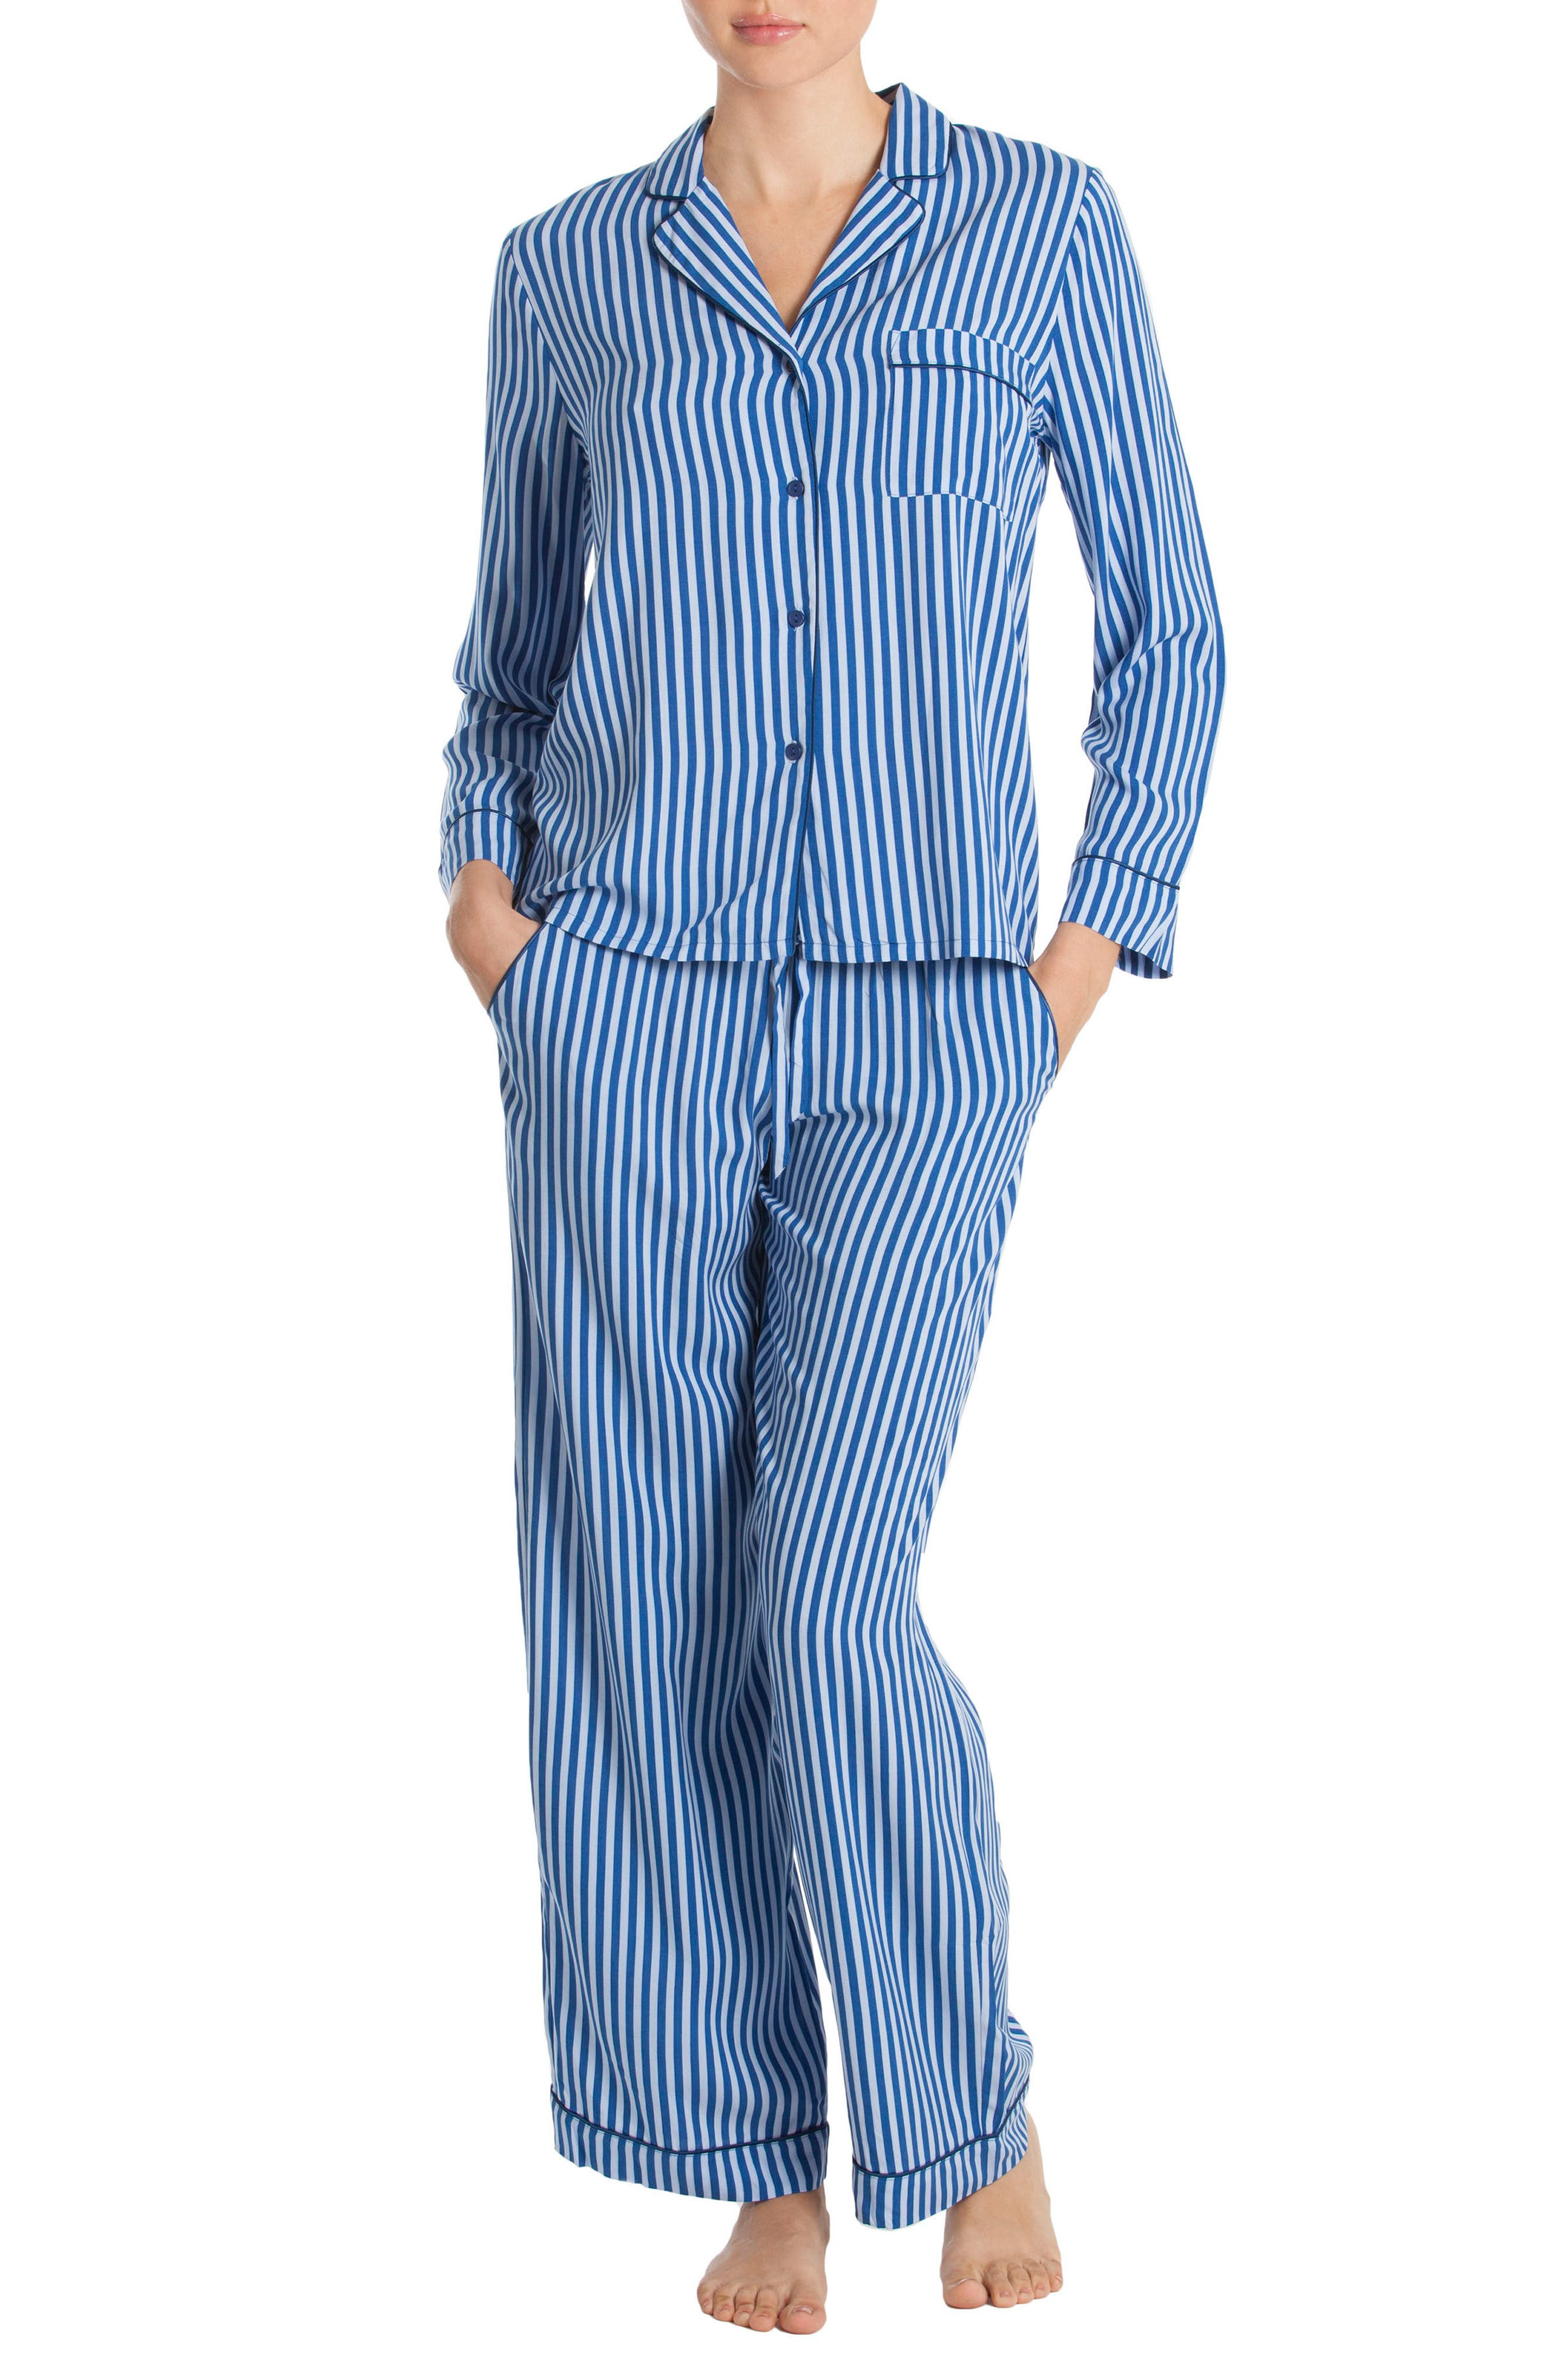 Main Image - In Bloom by Jonquil Stripe Pajamas